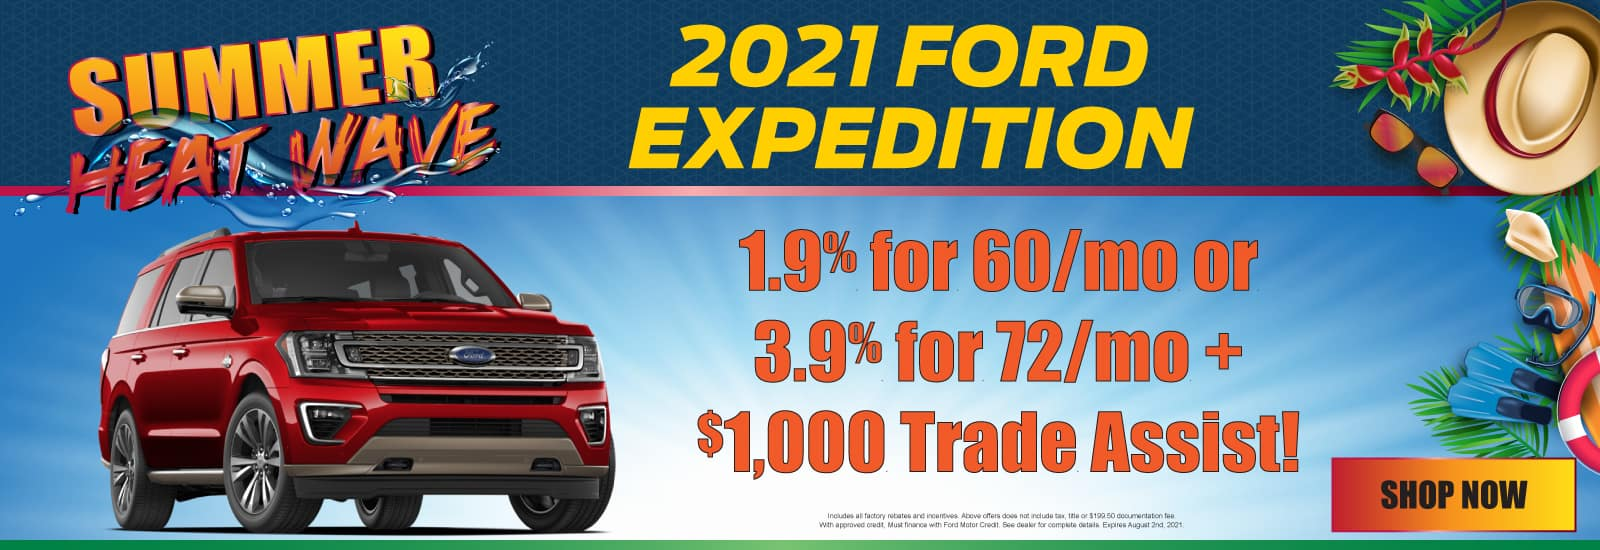 July2021-Ford-Expedition-Web-Banner-1600×550